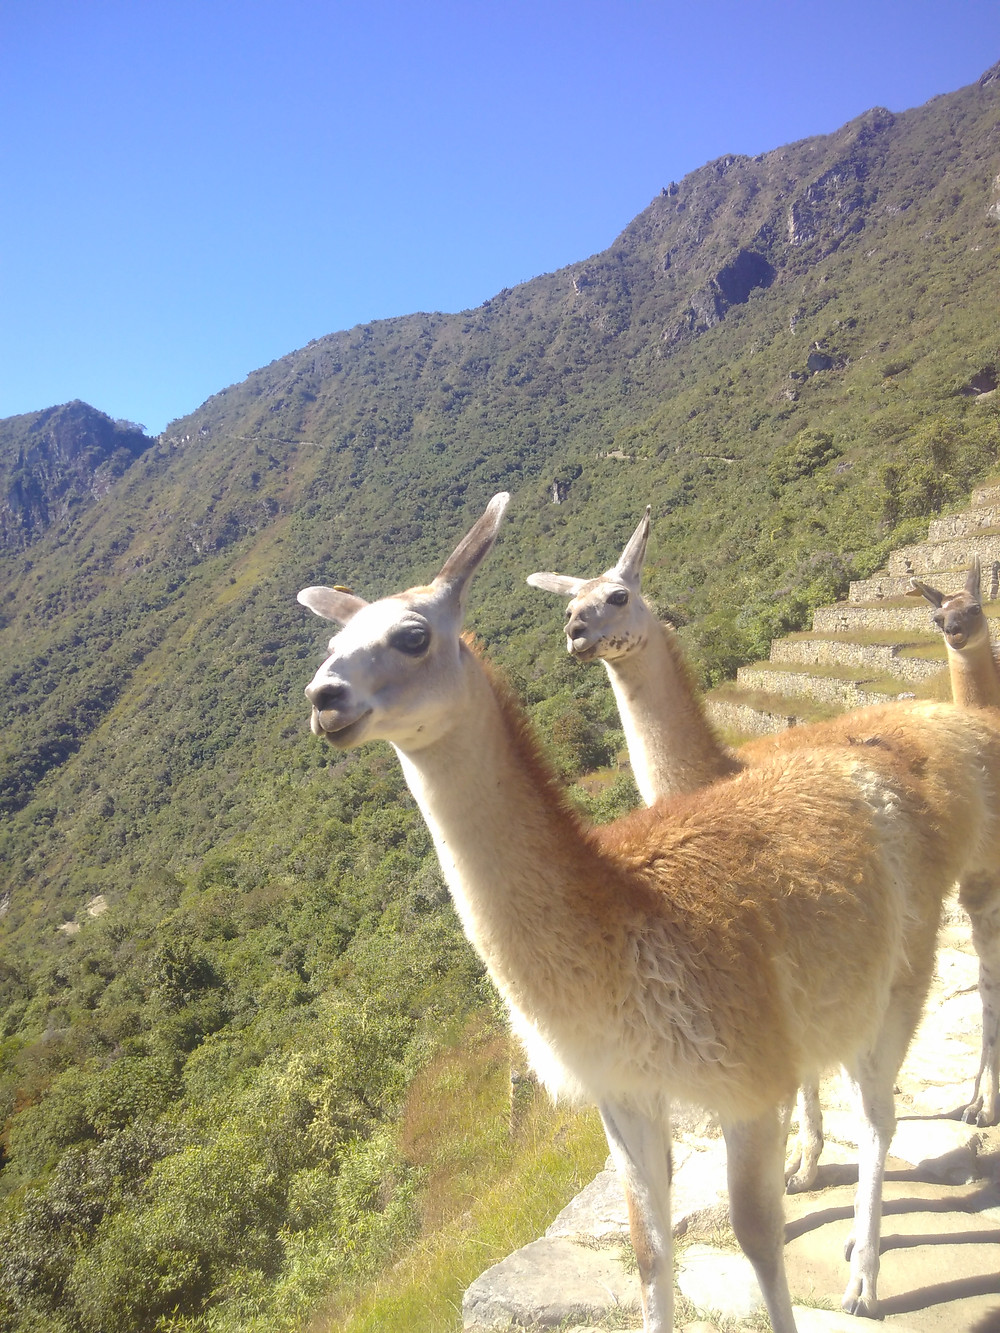 Llamas peering at the camera at Machu Picchu, Peru